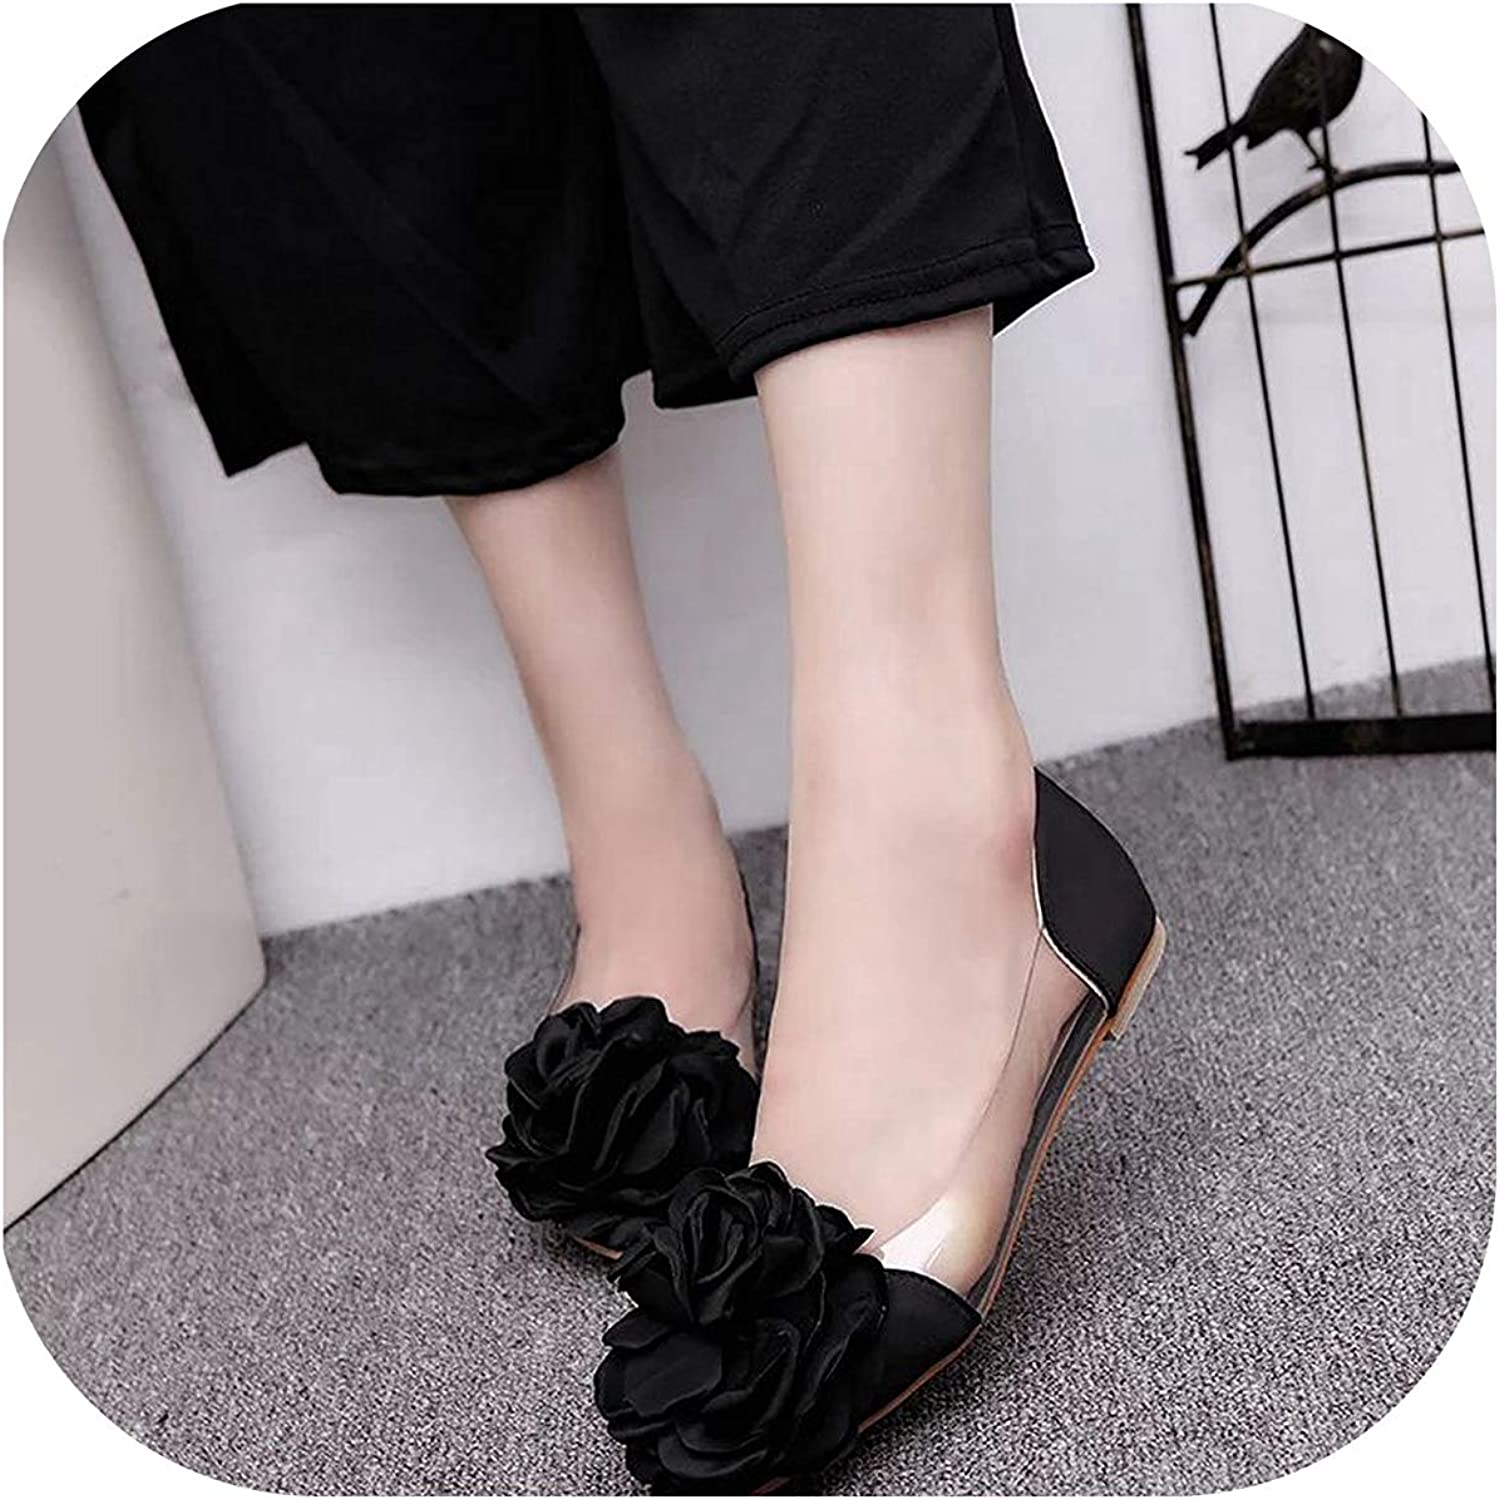 Easy Love Women Shoes Transparent Flower Leisure Ballerina Shoes Pointed Toe Slip On Casual Single Shoes,Black,39